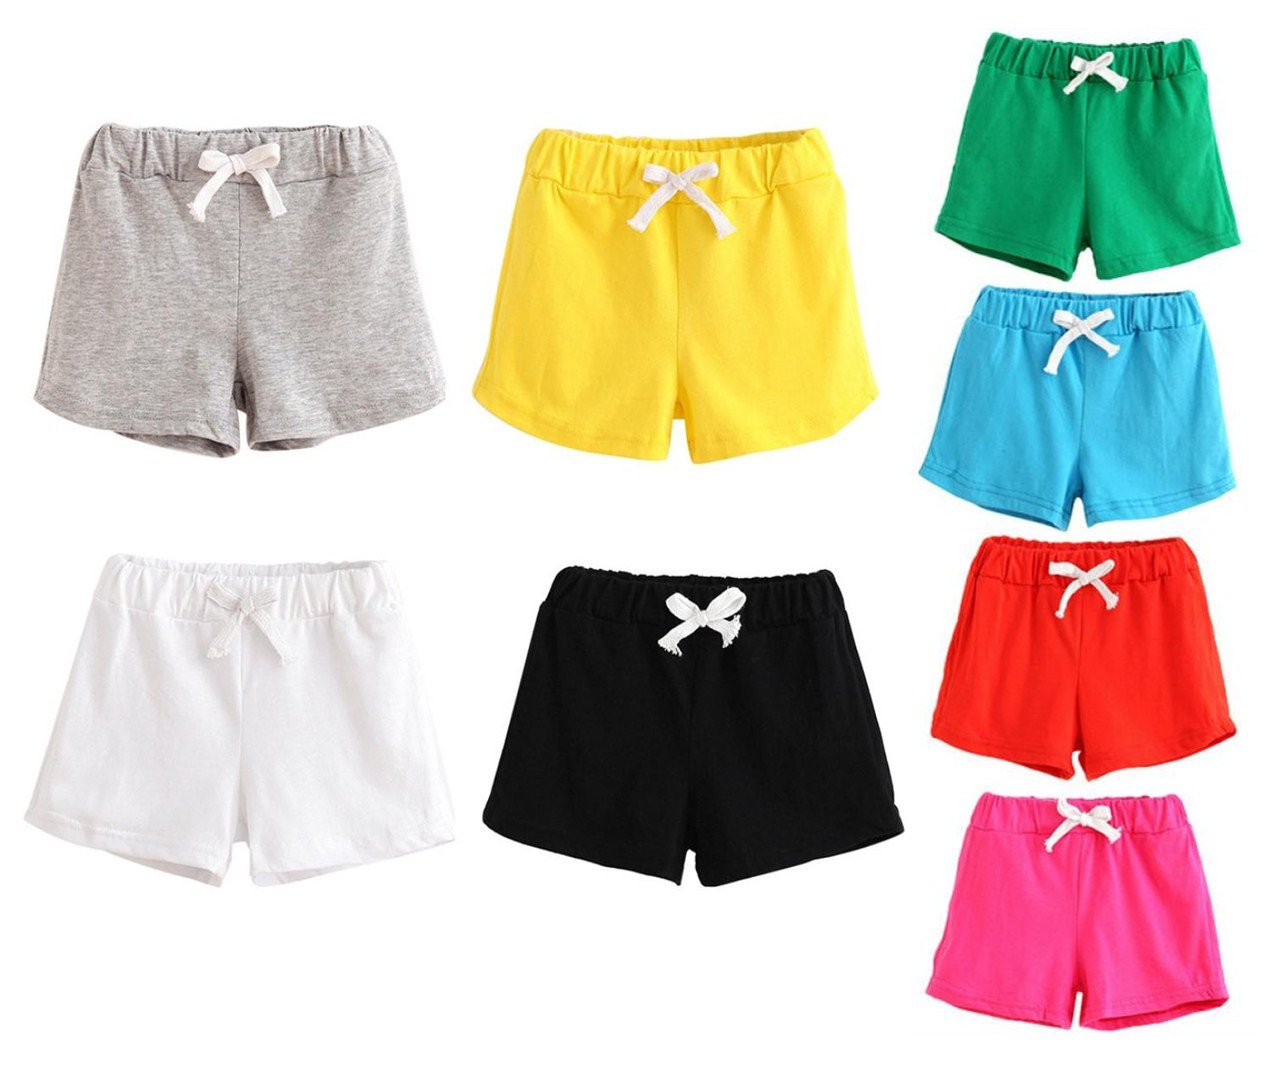 2-6 Years Cotton Toddlers Hot Weather Short Pants Unisex Clothing Kids Shorts Bottoms (2T(2-3 Years), Black)